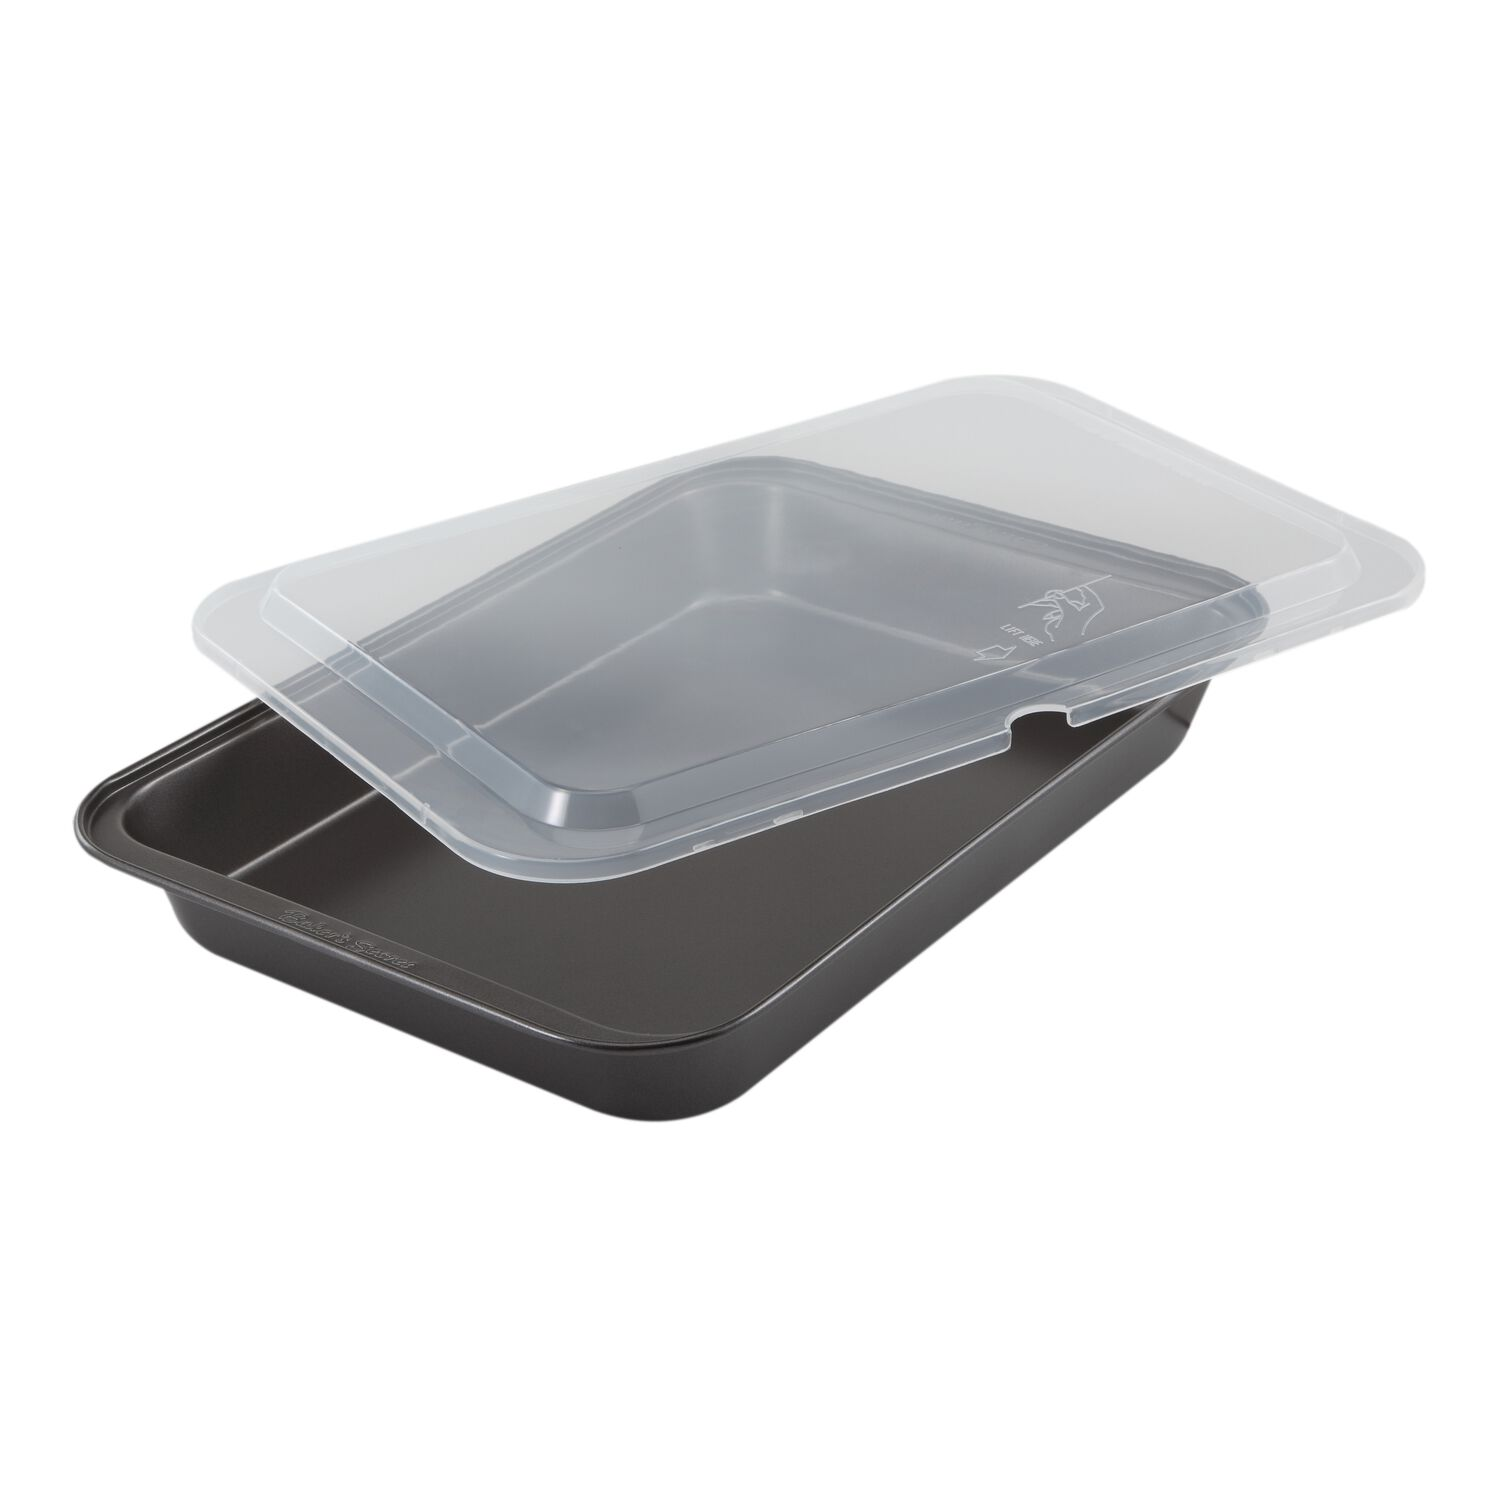 Baker's Secret Essentials Cook N Carry 9 X 13 Cake Pan